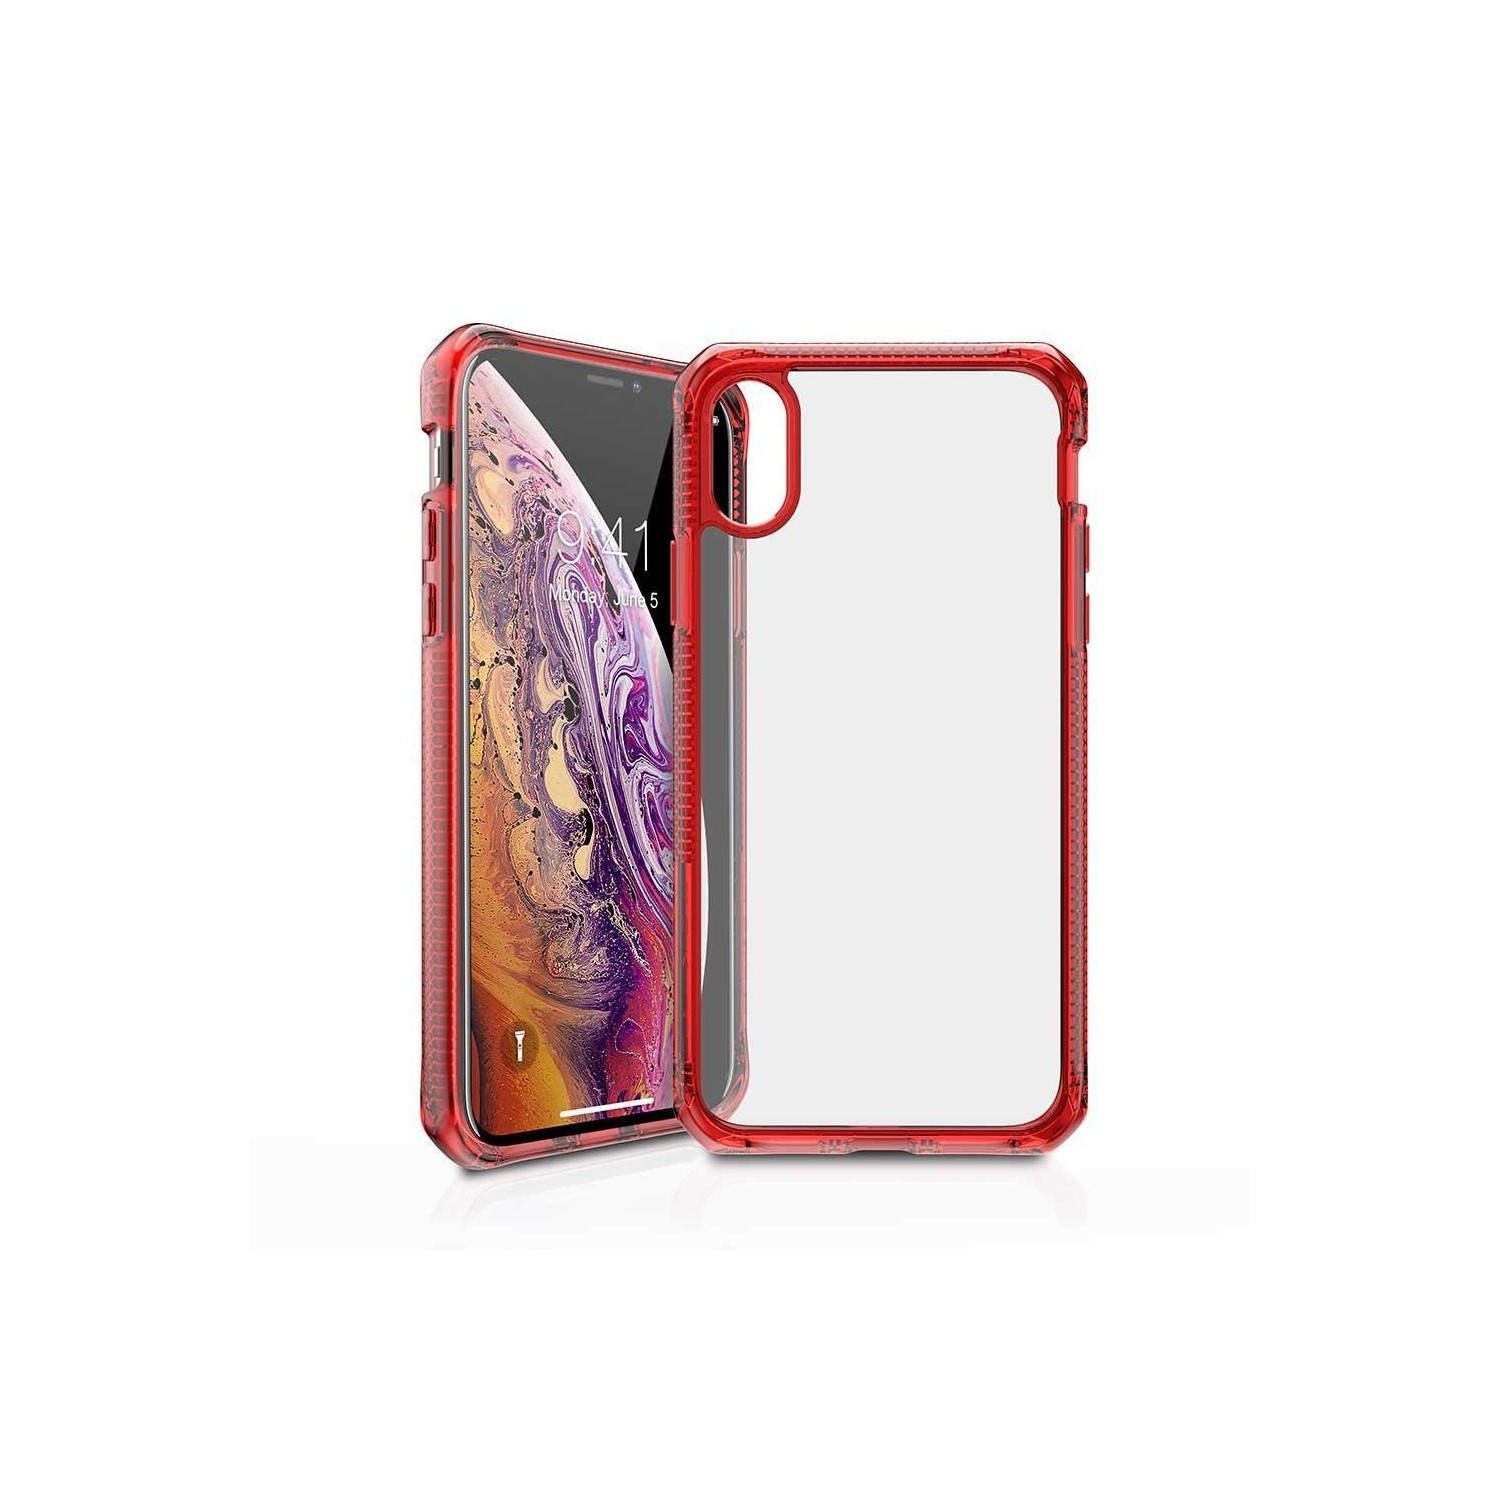 Case - ITSKINS Hybrid case for iPhone Xs / X - Tra Red